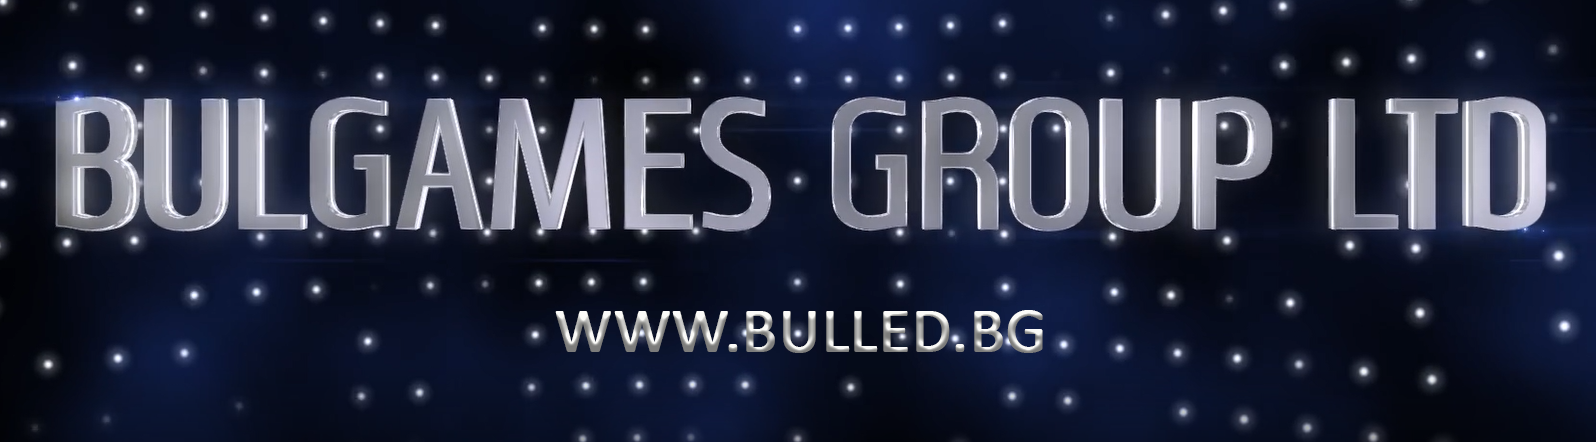 Bulgames group ltd